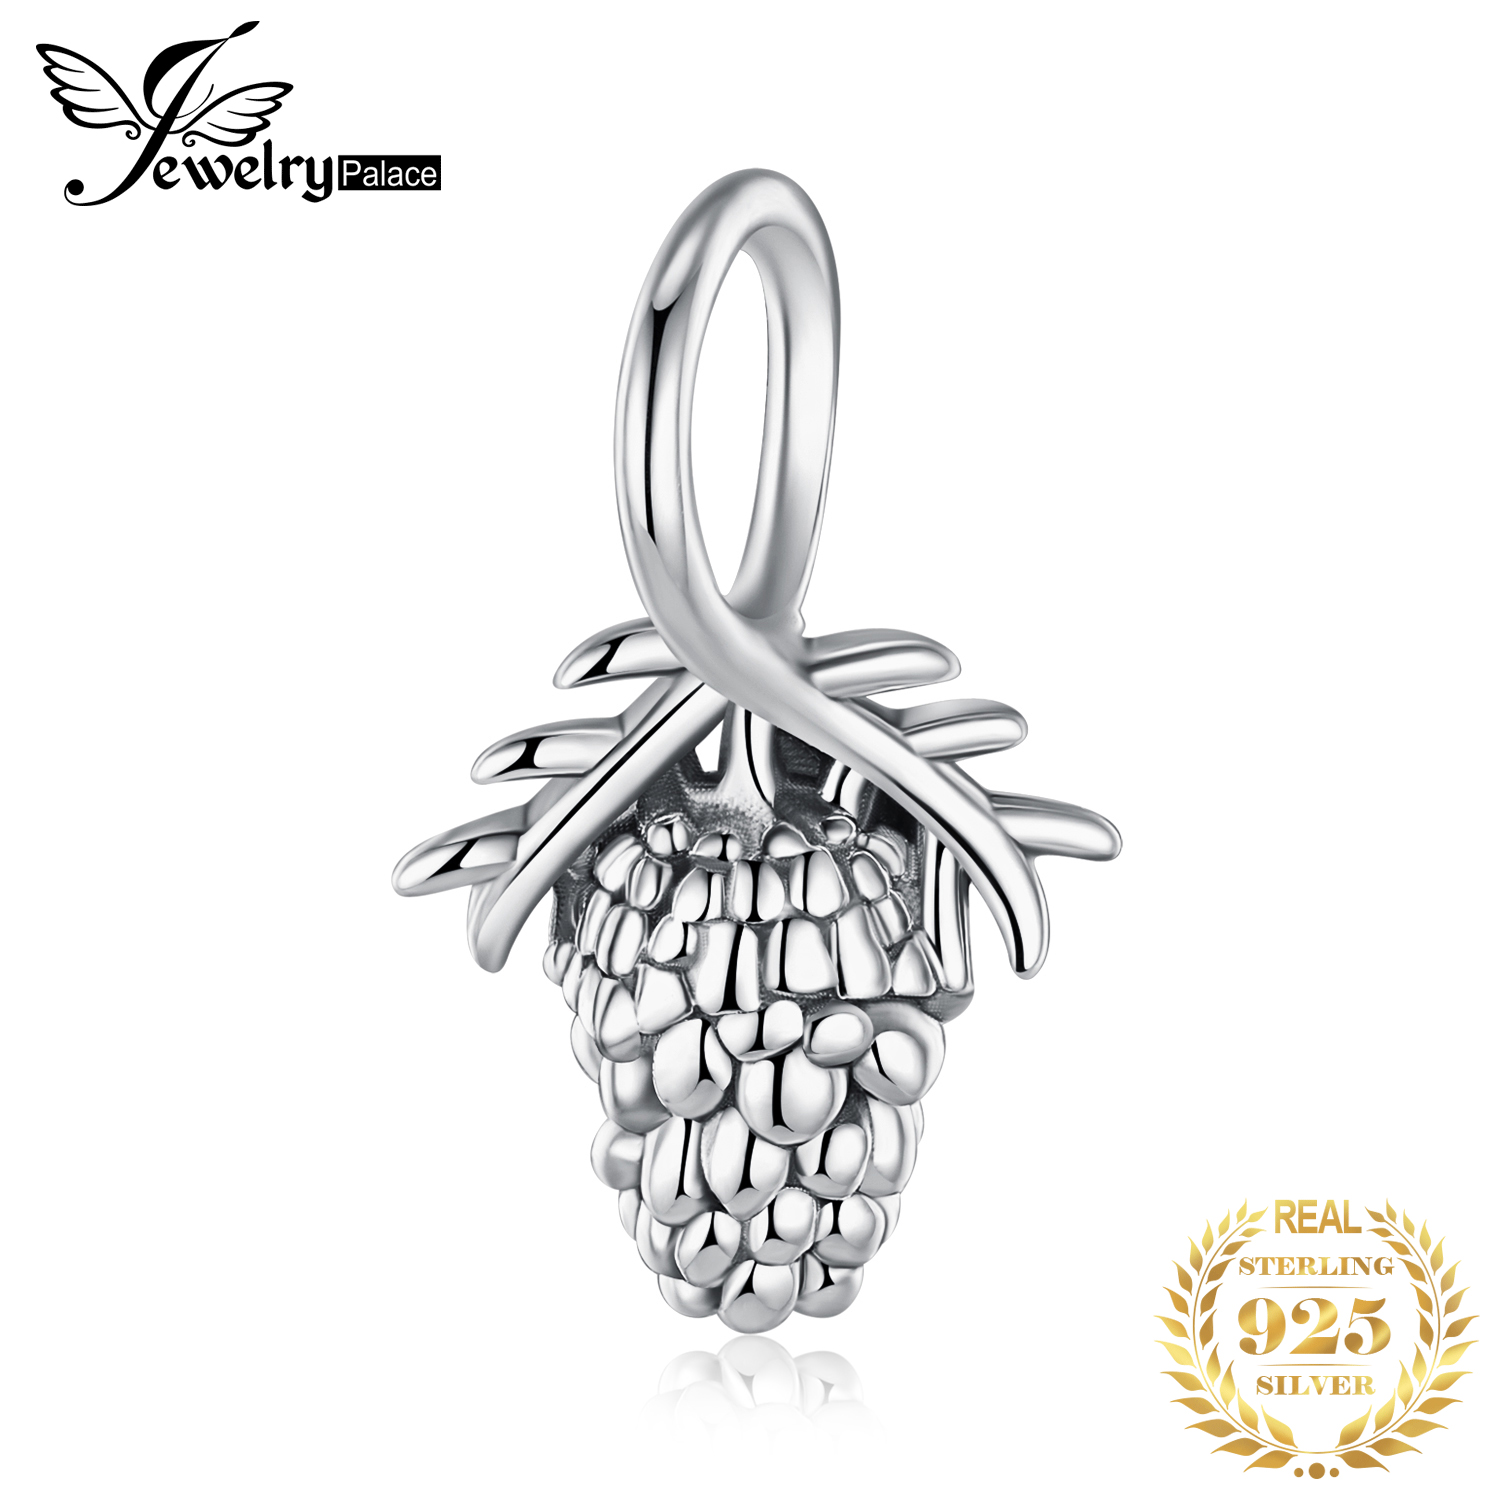 JewelryPalace Pinecone 925 Sterling Silver Beads Charms Silver 925 Original For Bracelet Silver 925 Original Jewelry Making Girl